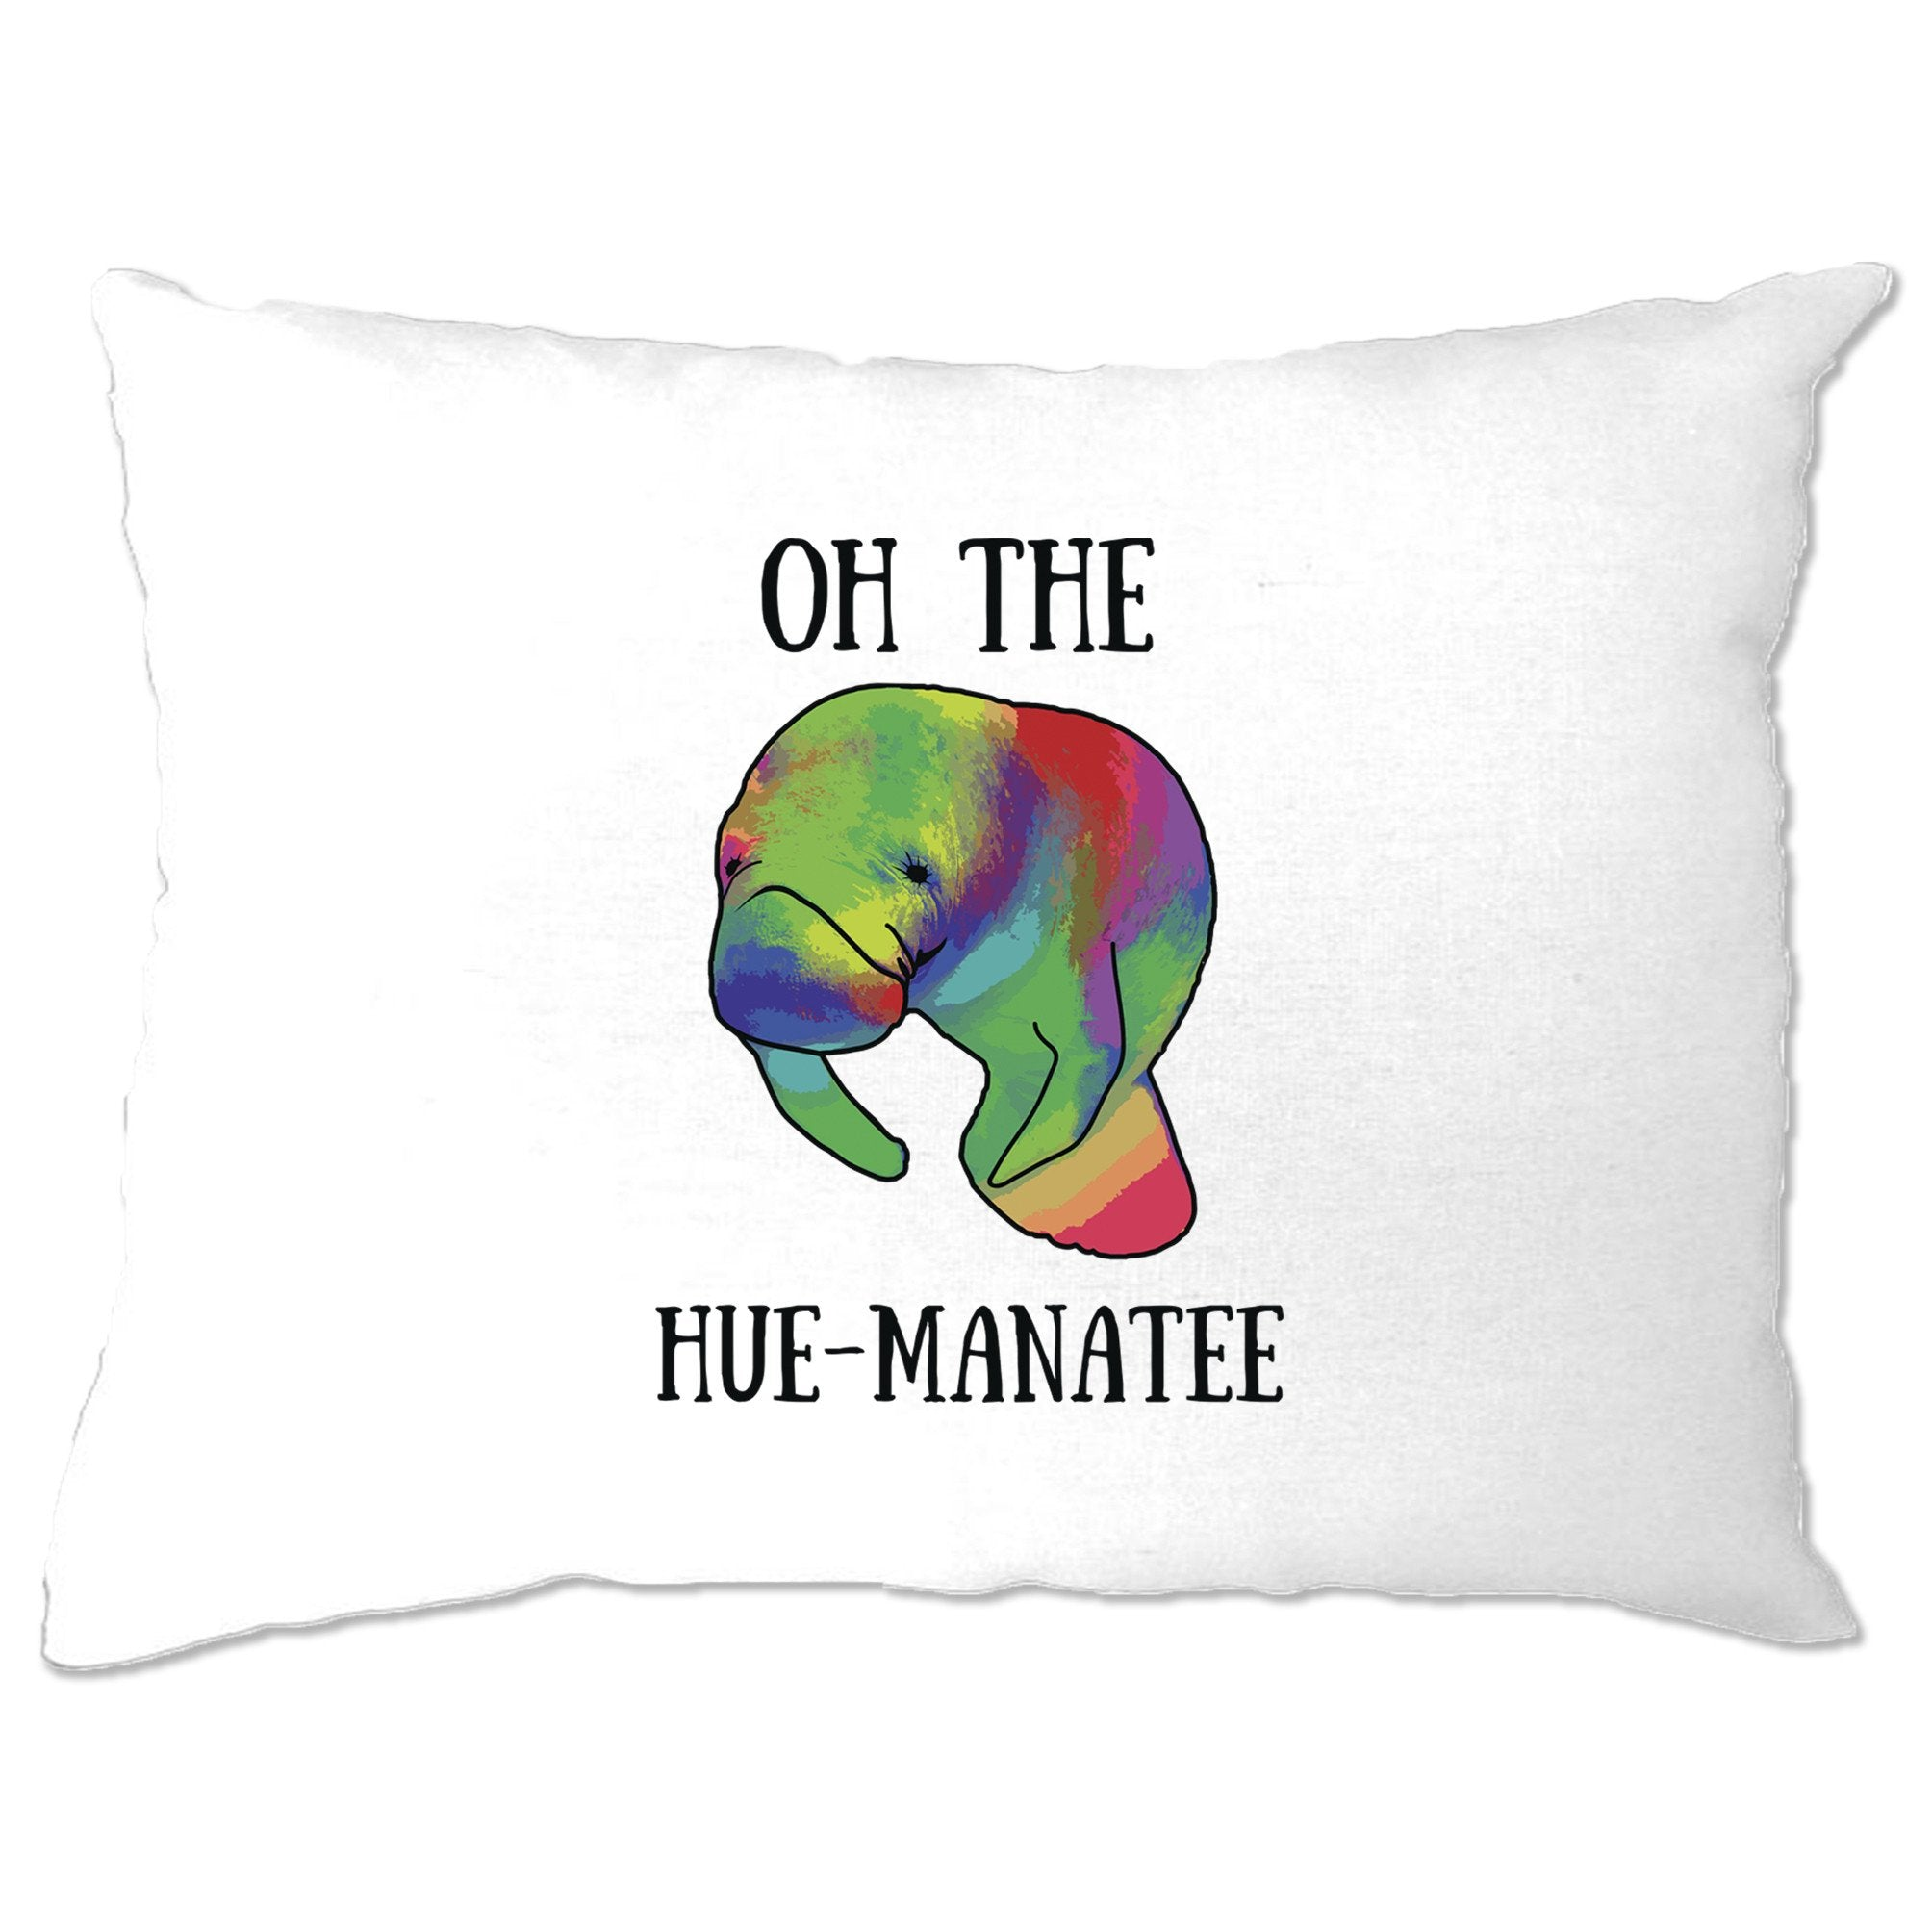 Novelty Pun Pillow Case Oh The Hue-Manatee Humanity